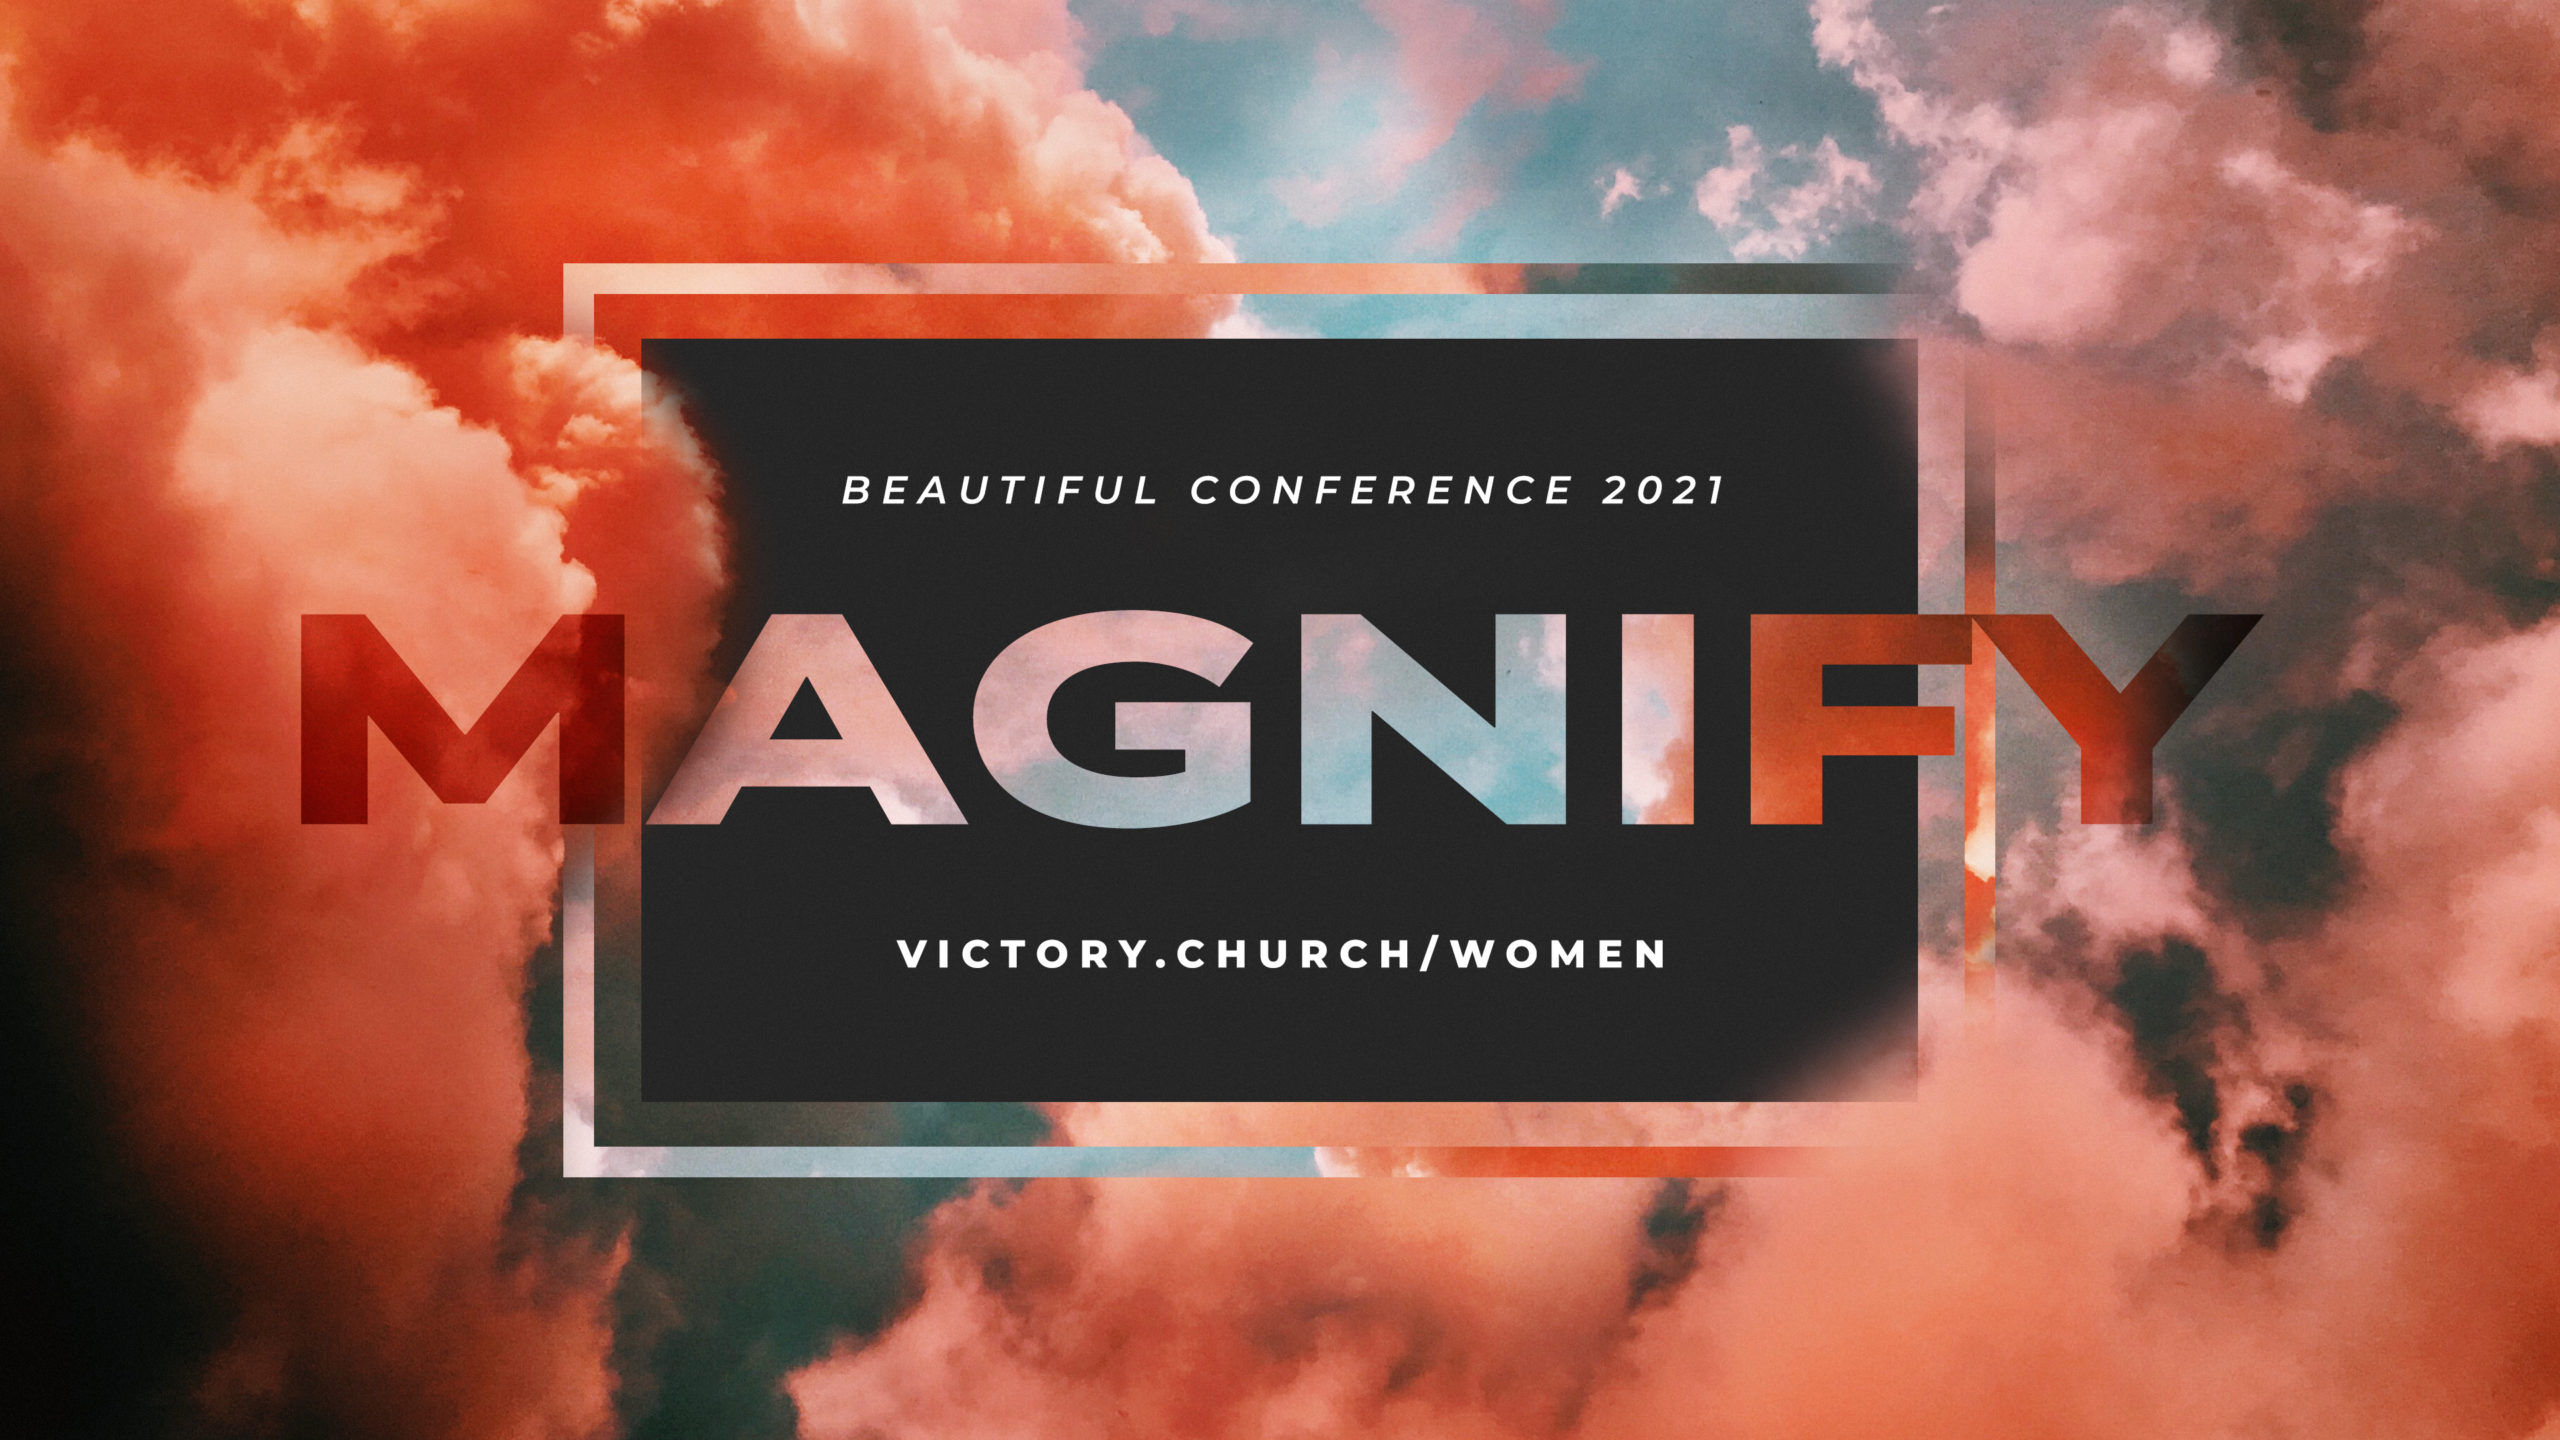 Beautiful Conference 2021 at Victory Church